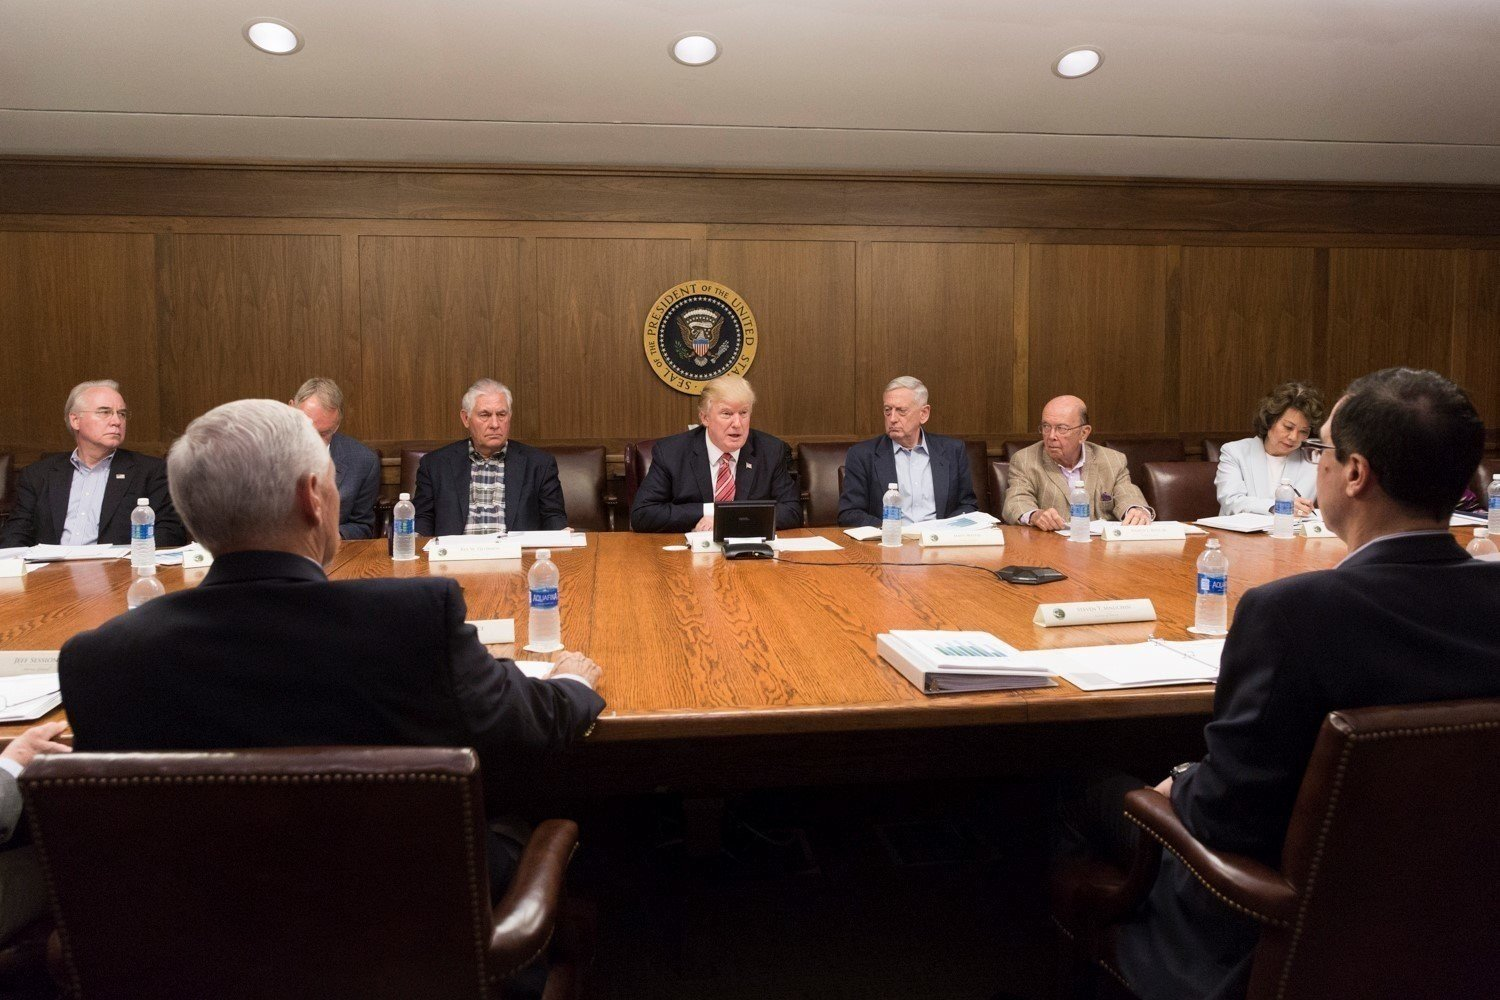 President Donald J. Trump joined by Vice President Mike Pence and members of the Cabinet participates in a Cabinet meeting Saturday